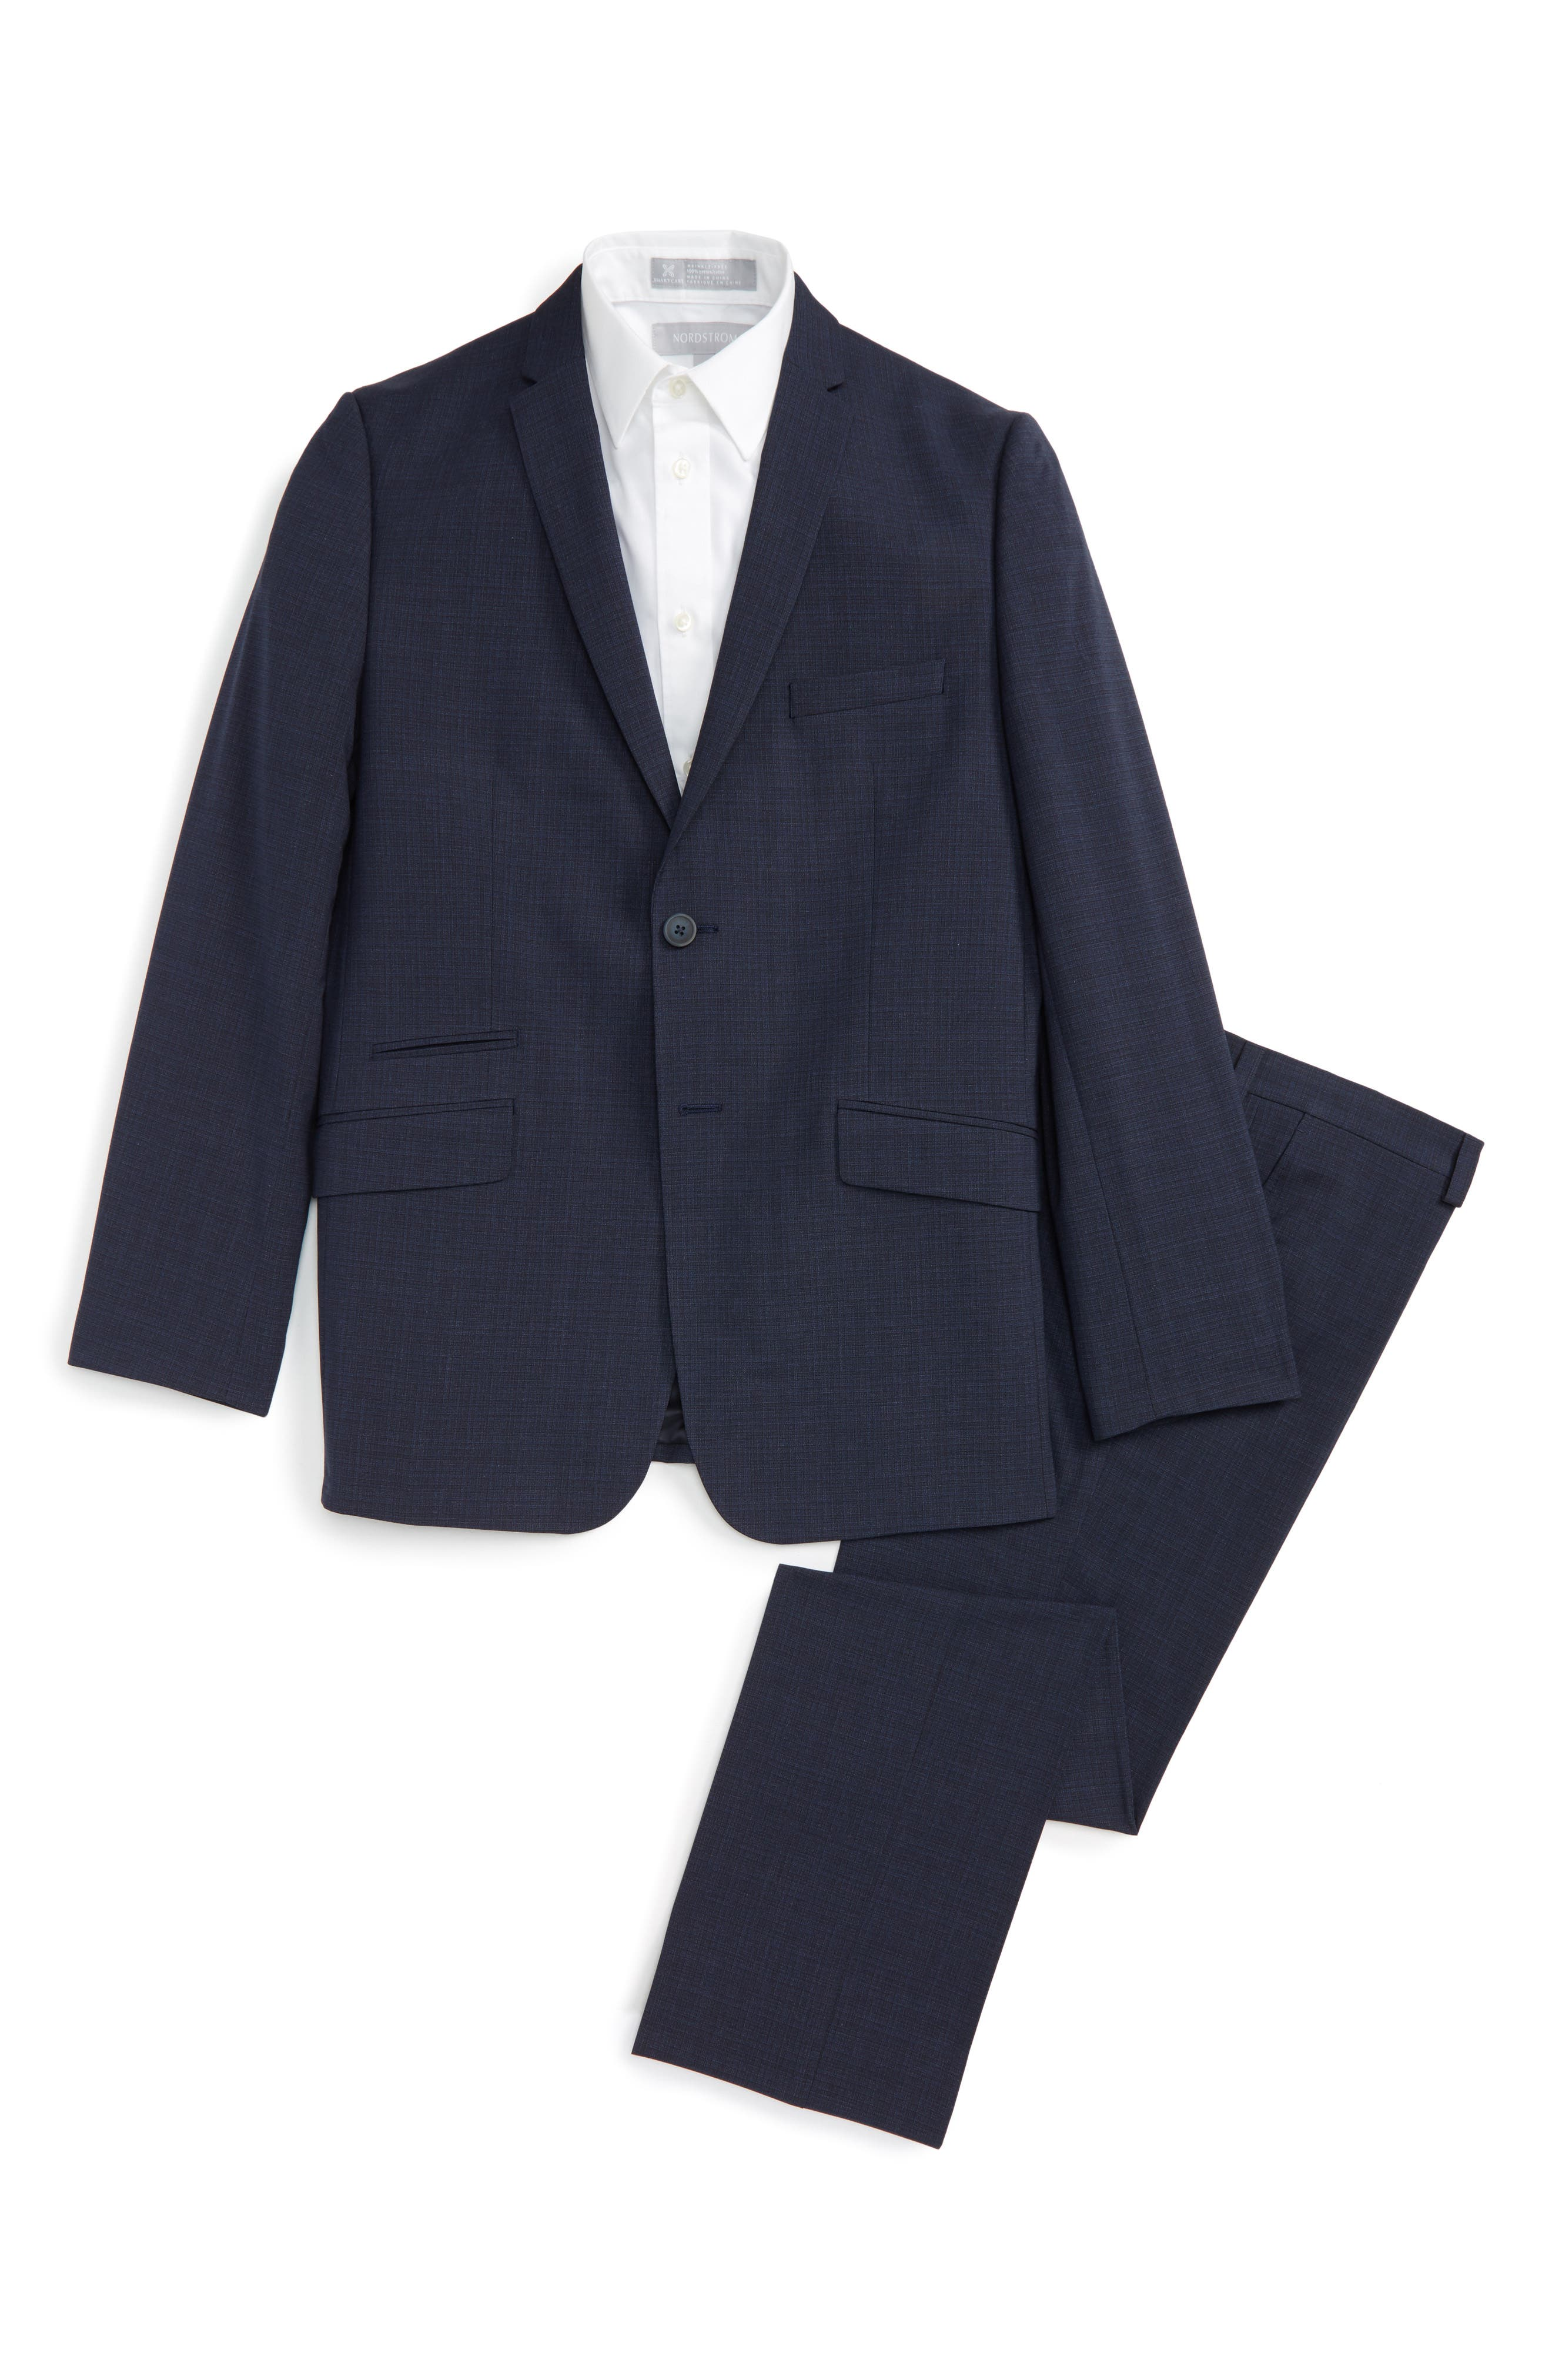 Tattersall Suit,                             Main thumbnail 1, color,                             410